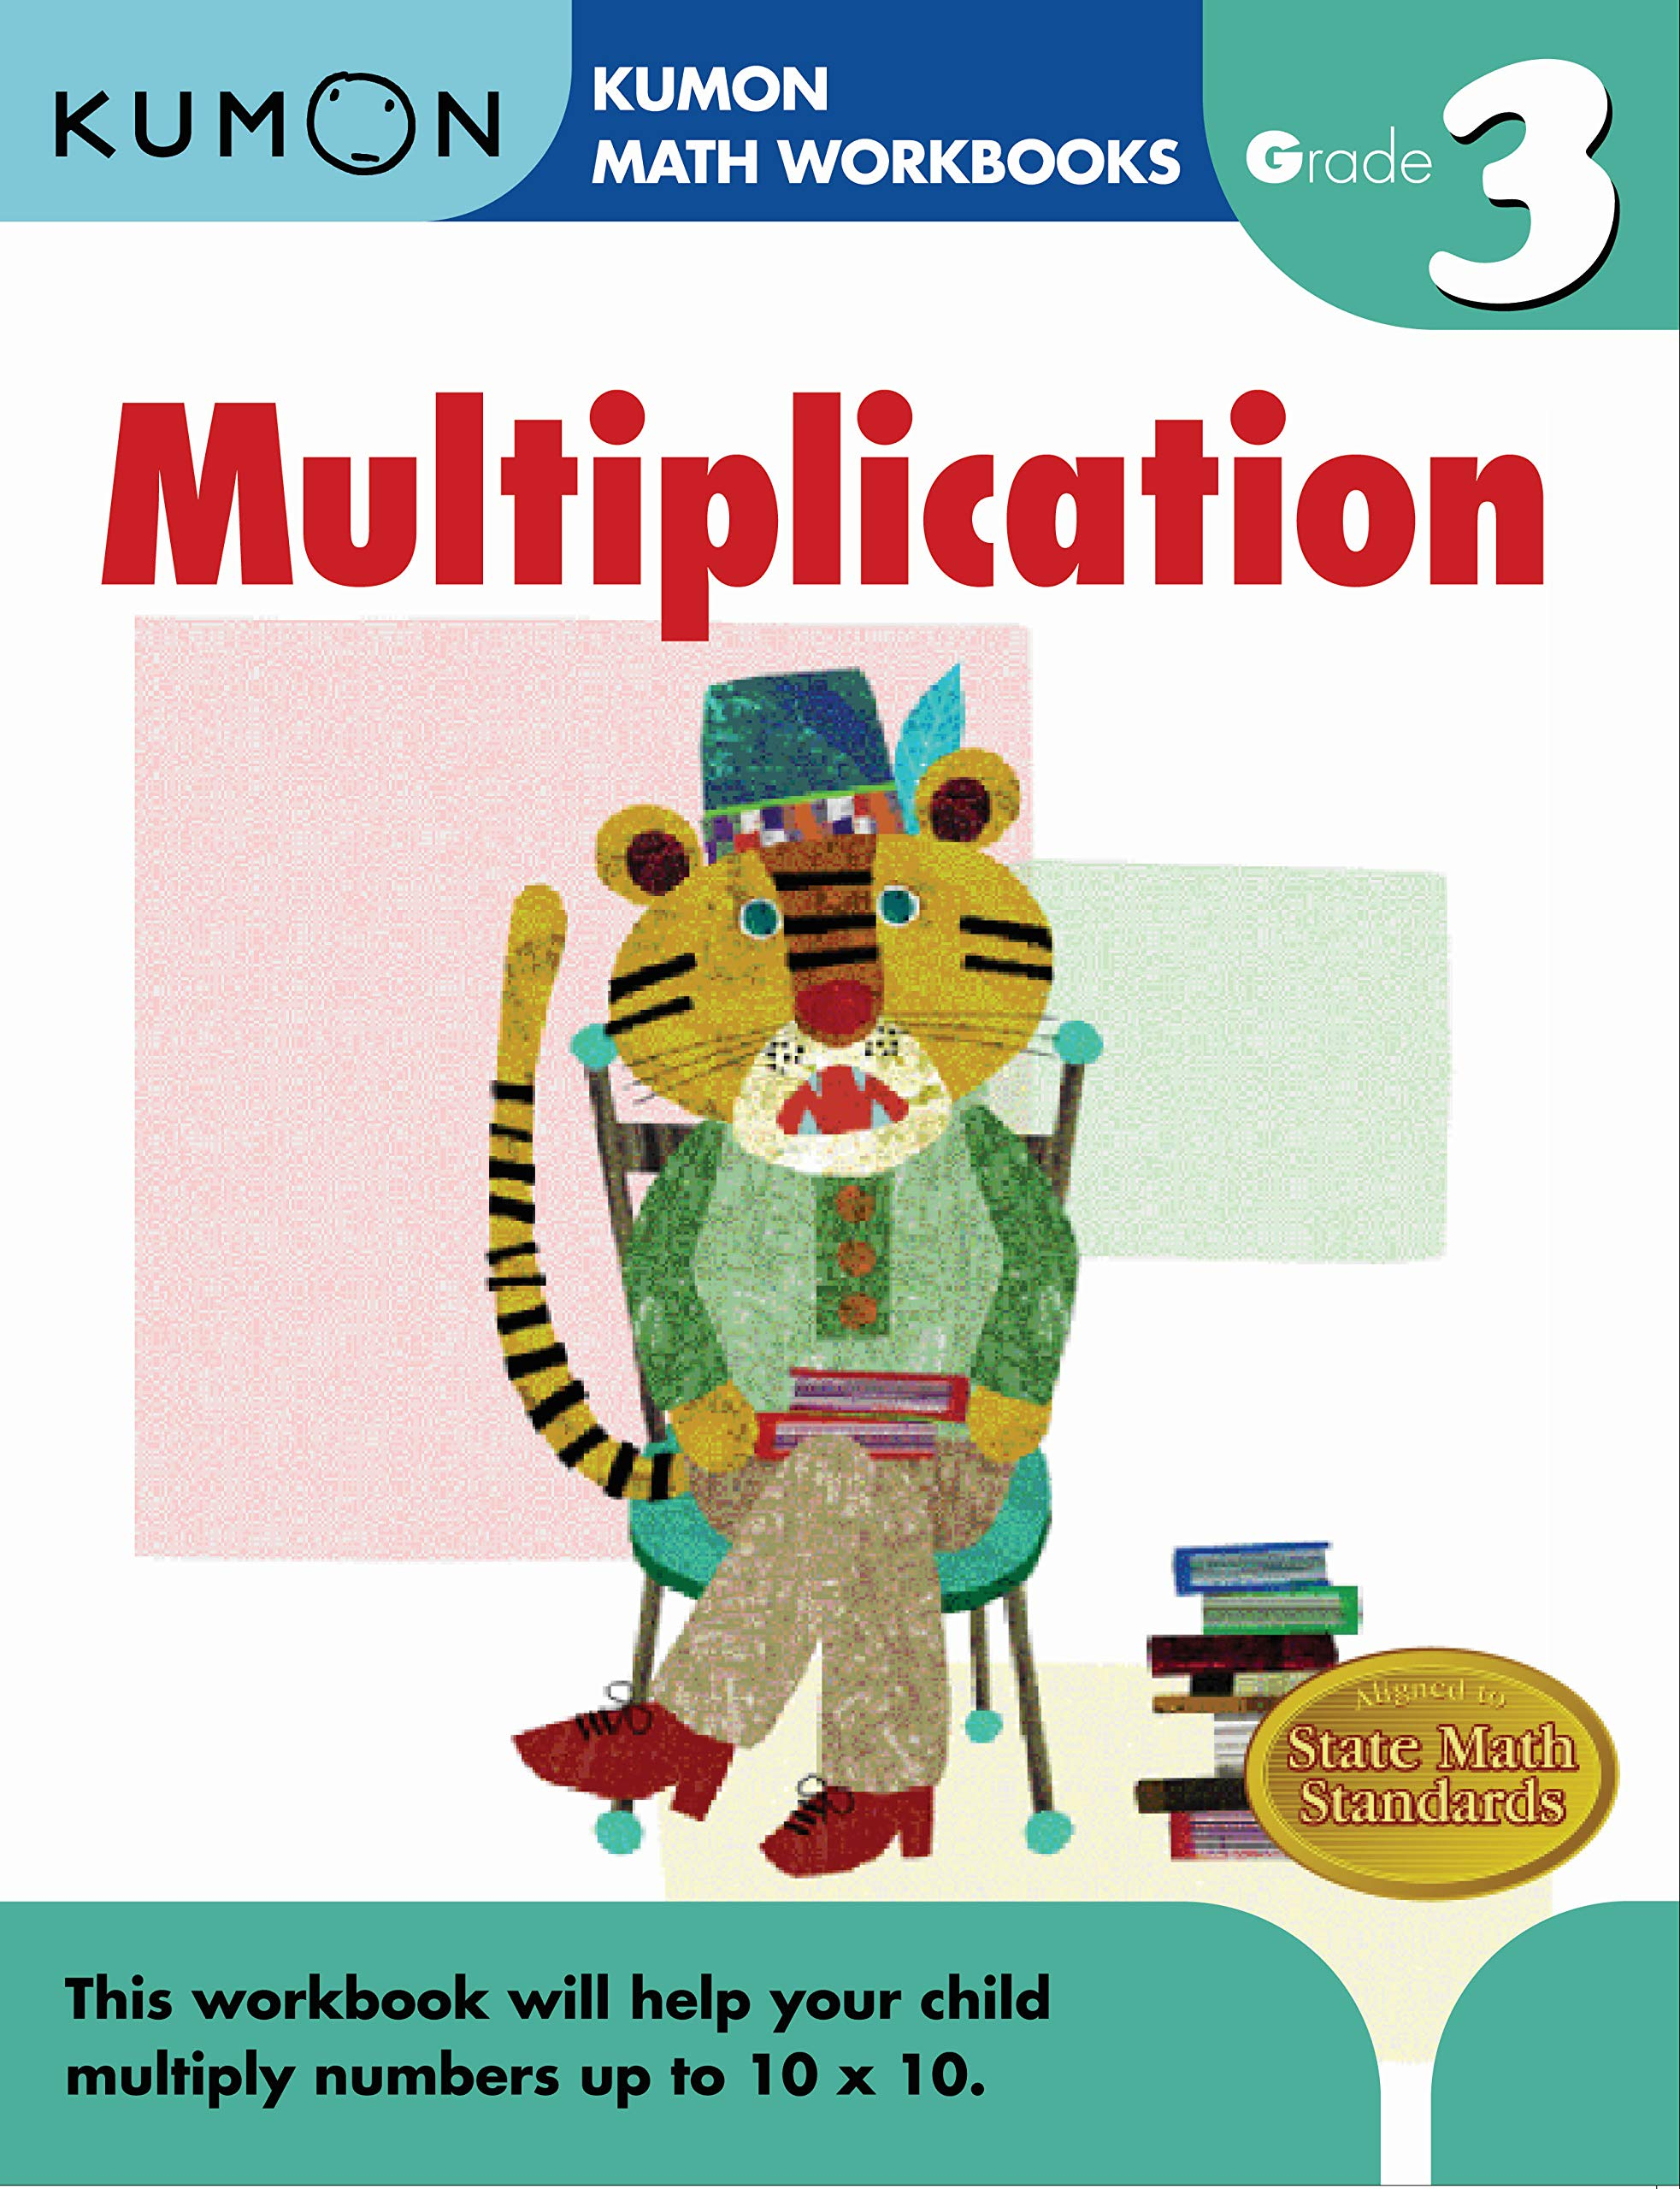 Buy Grade 3 Multiplication Kumon Math Workbooks Book Online At Low Prices In India Grade 3 Multiplication Kumon Math Workbooks Reviews Ratings Amazon In [ 2560 x 1965 Pixel ]